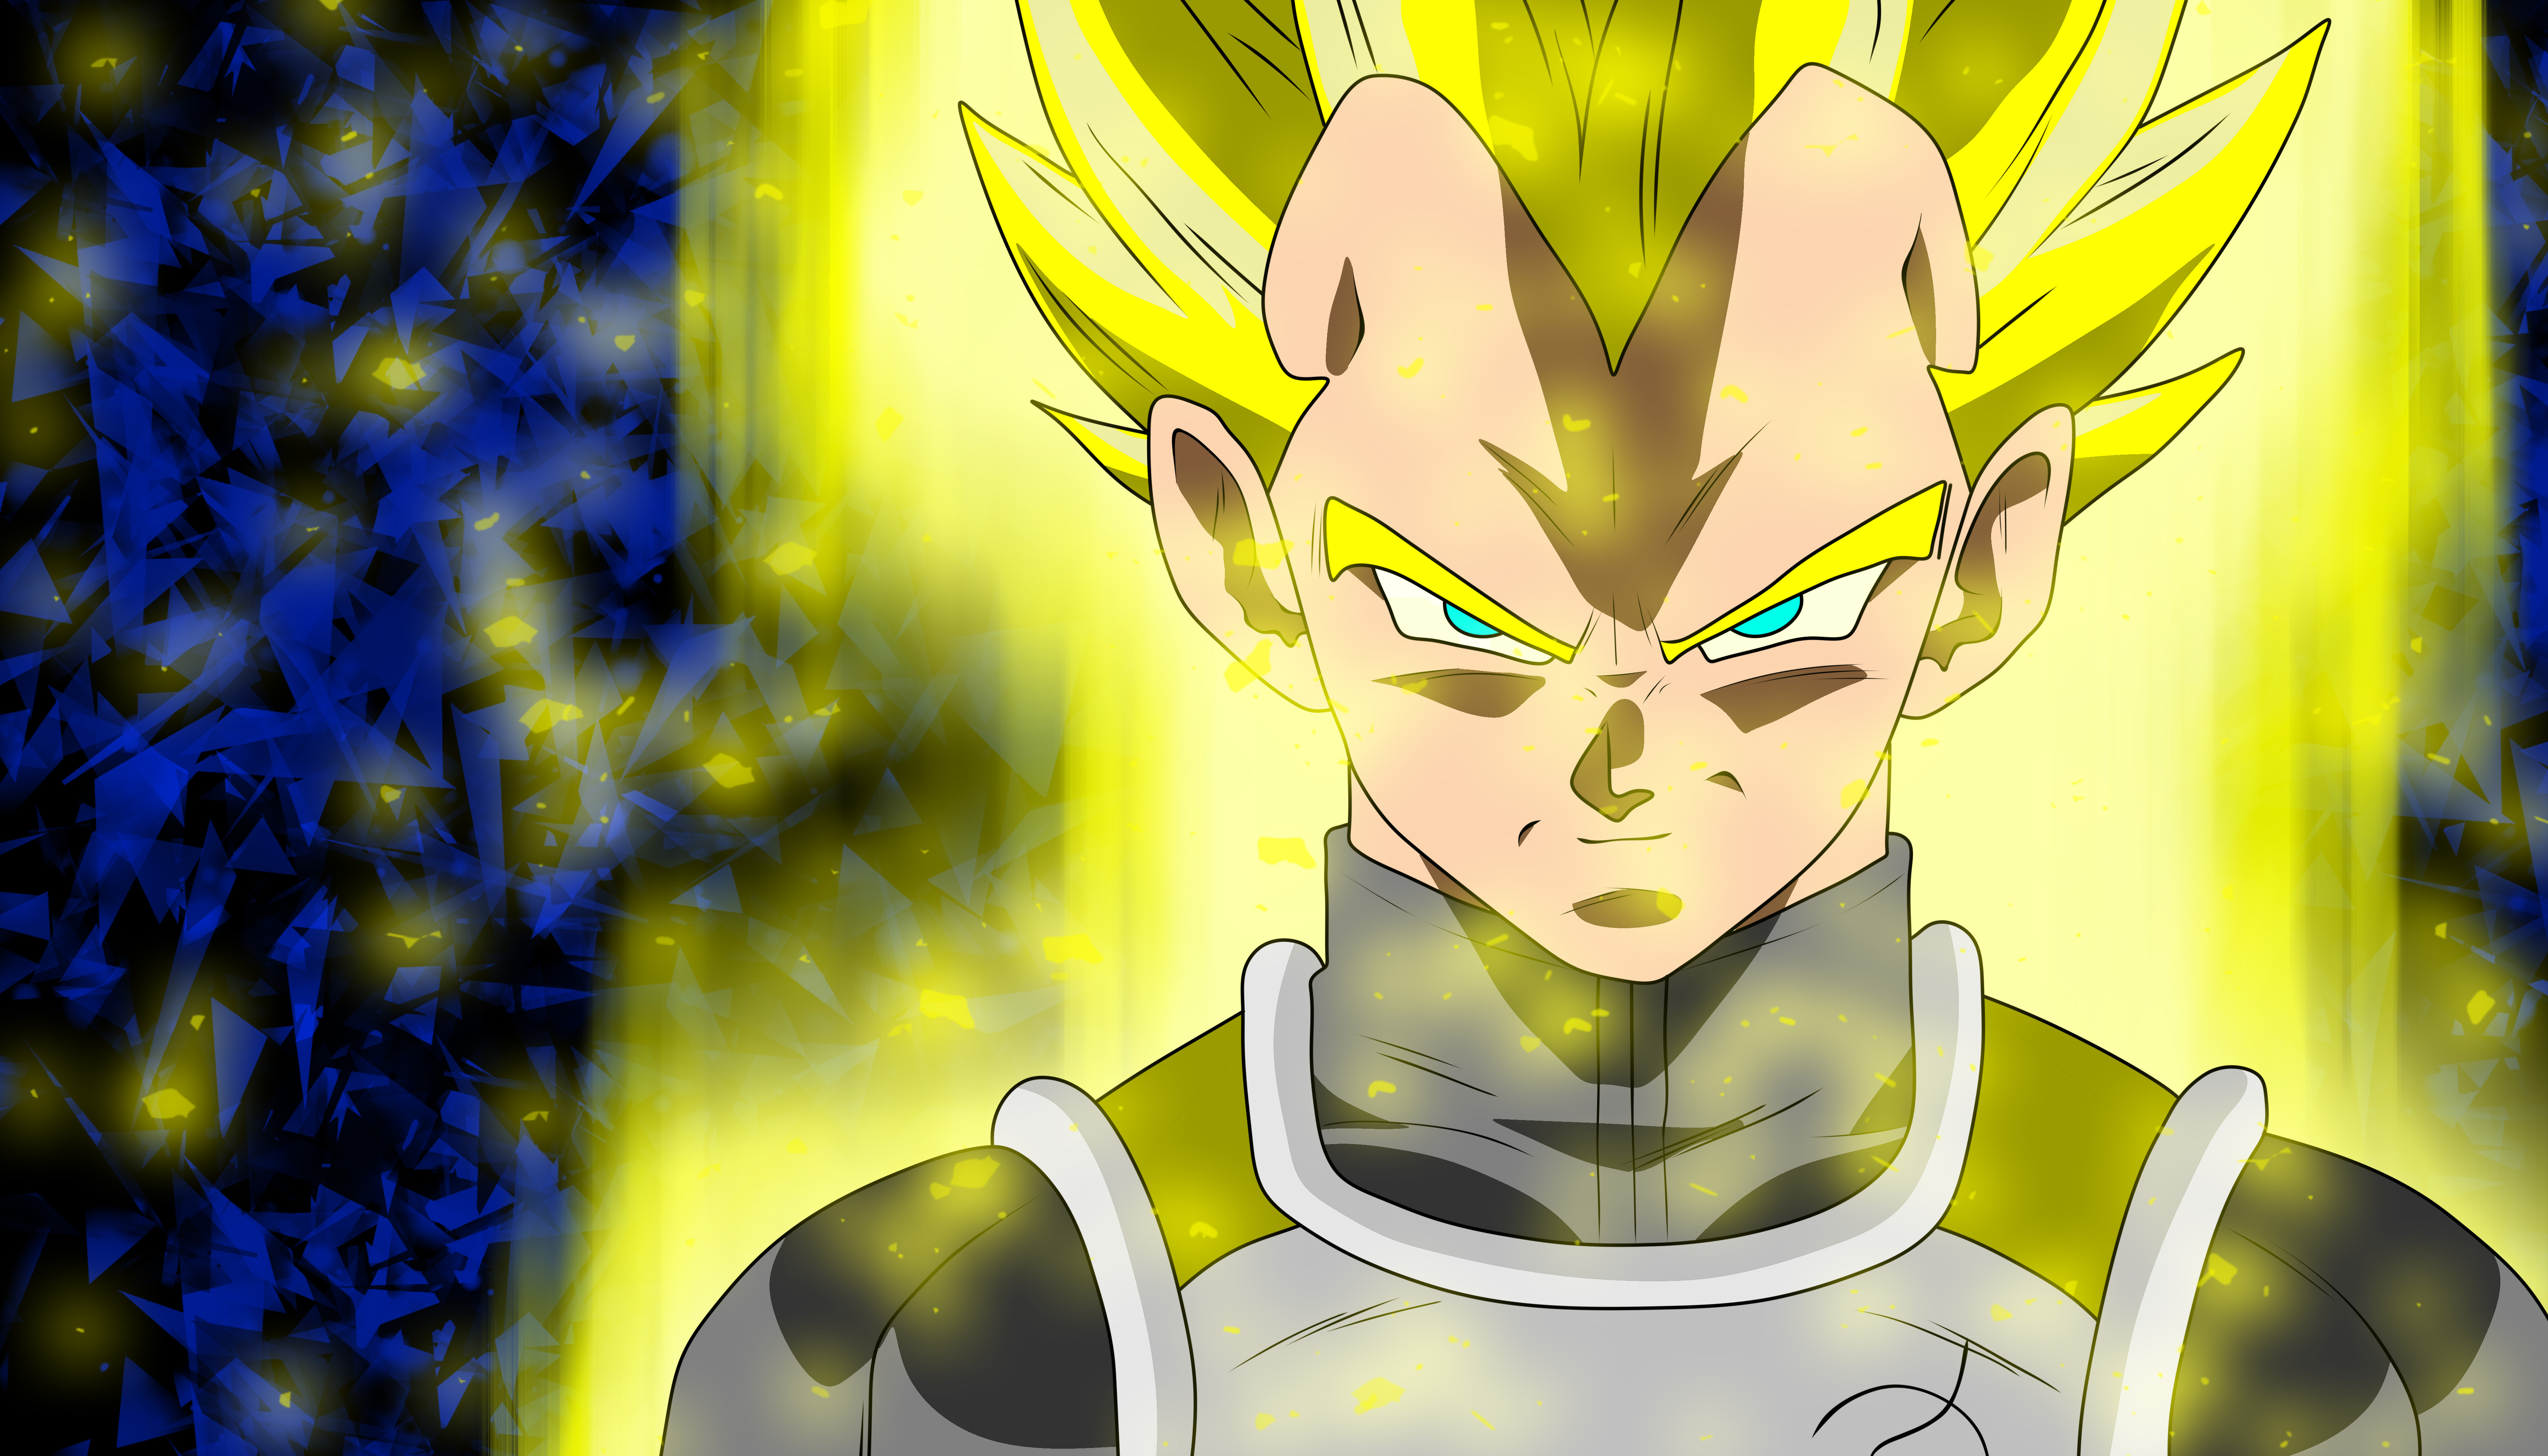 Vegeta Dragon Ball Super 8k, HD Anime, 4k Wallpapers, Images, Backgrounds, Photos and Pictures